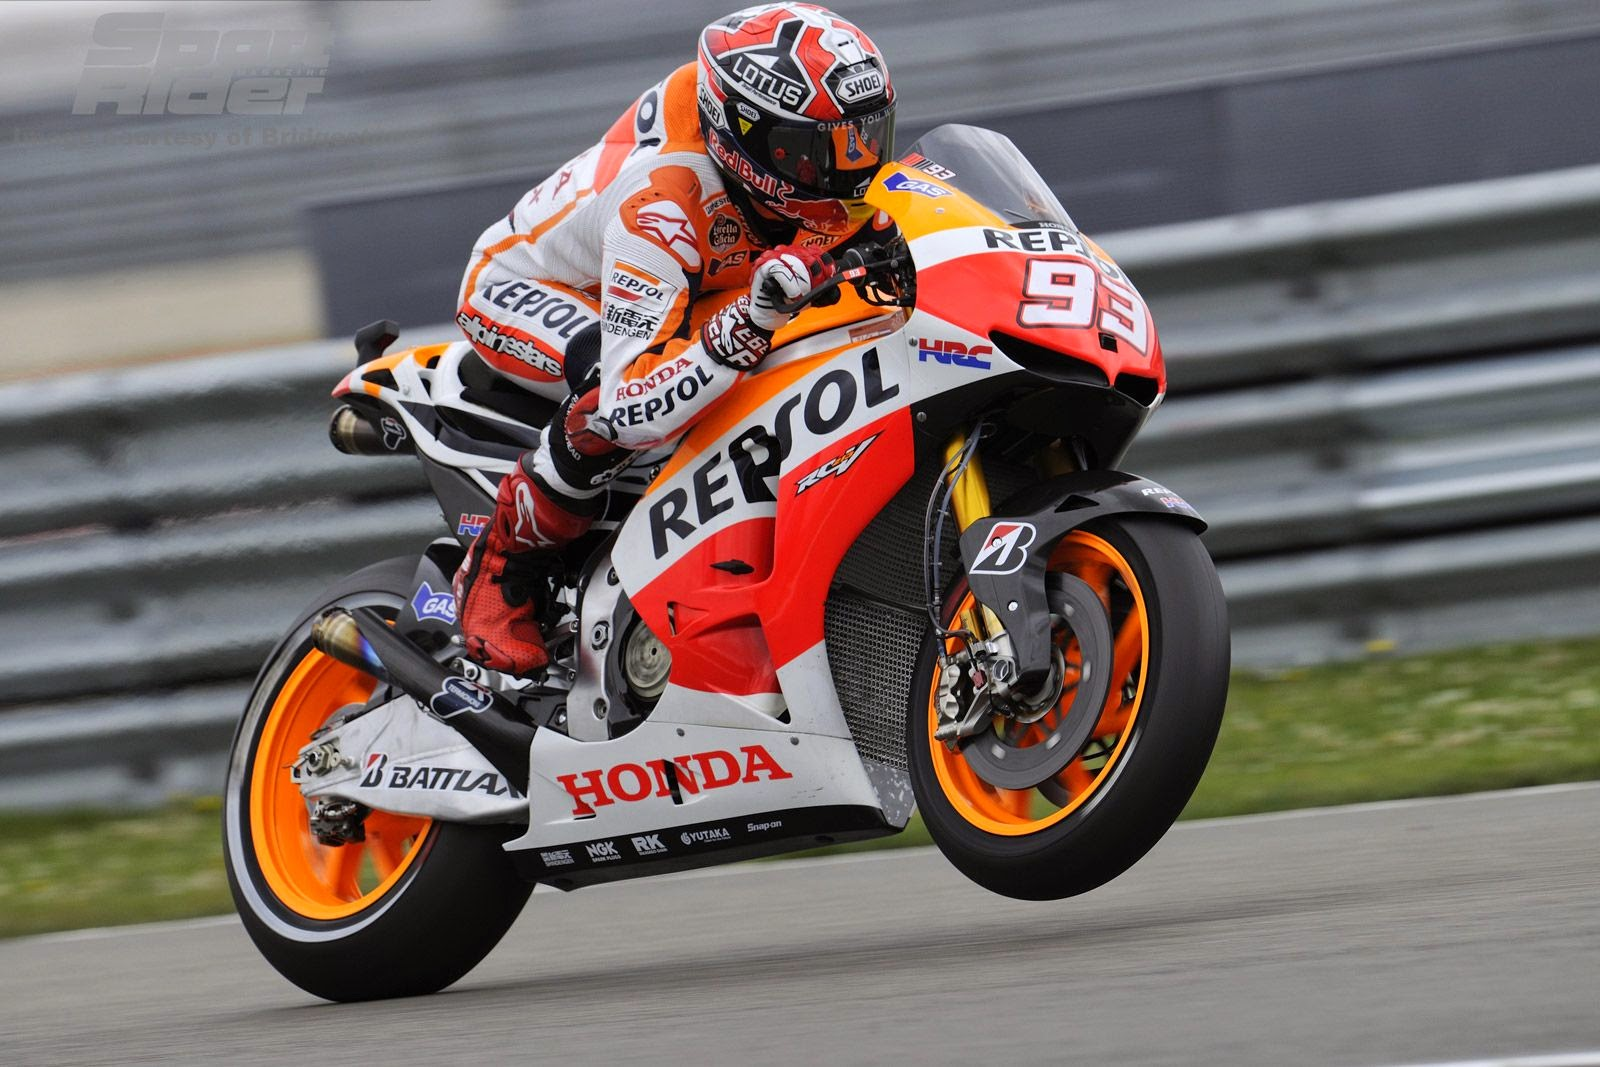 Motogp Wallpapers Wallpaper: Watchopenia: Not Really A Tag Heuer; Not Really A Limited